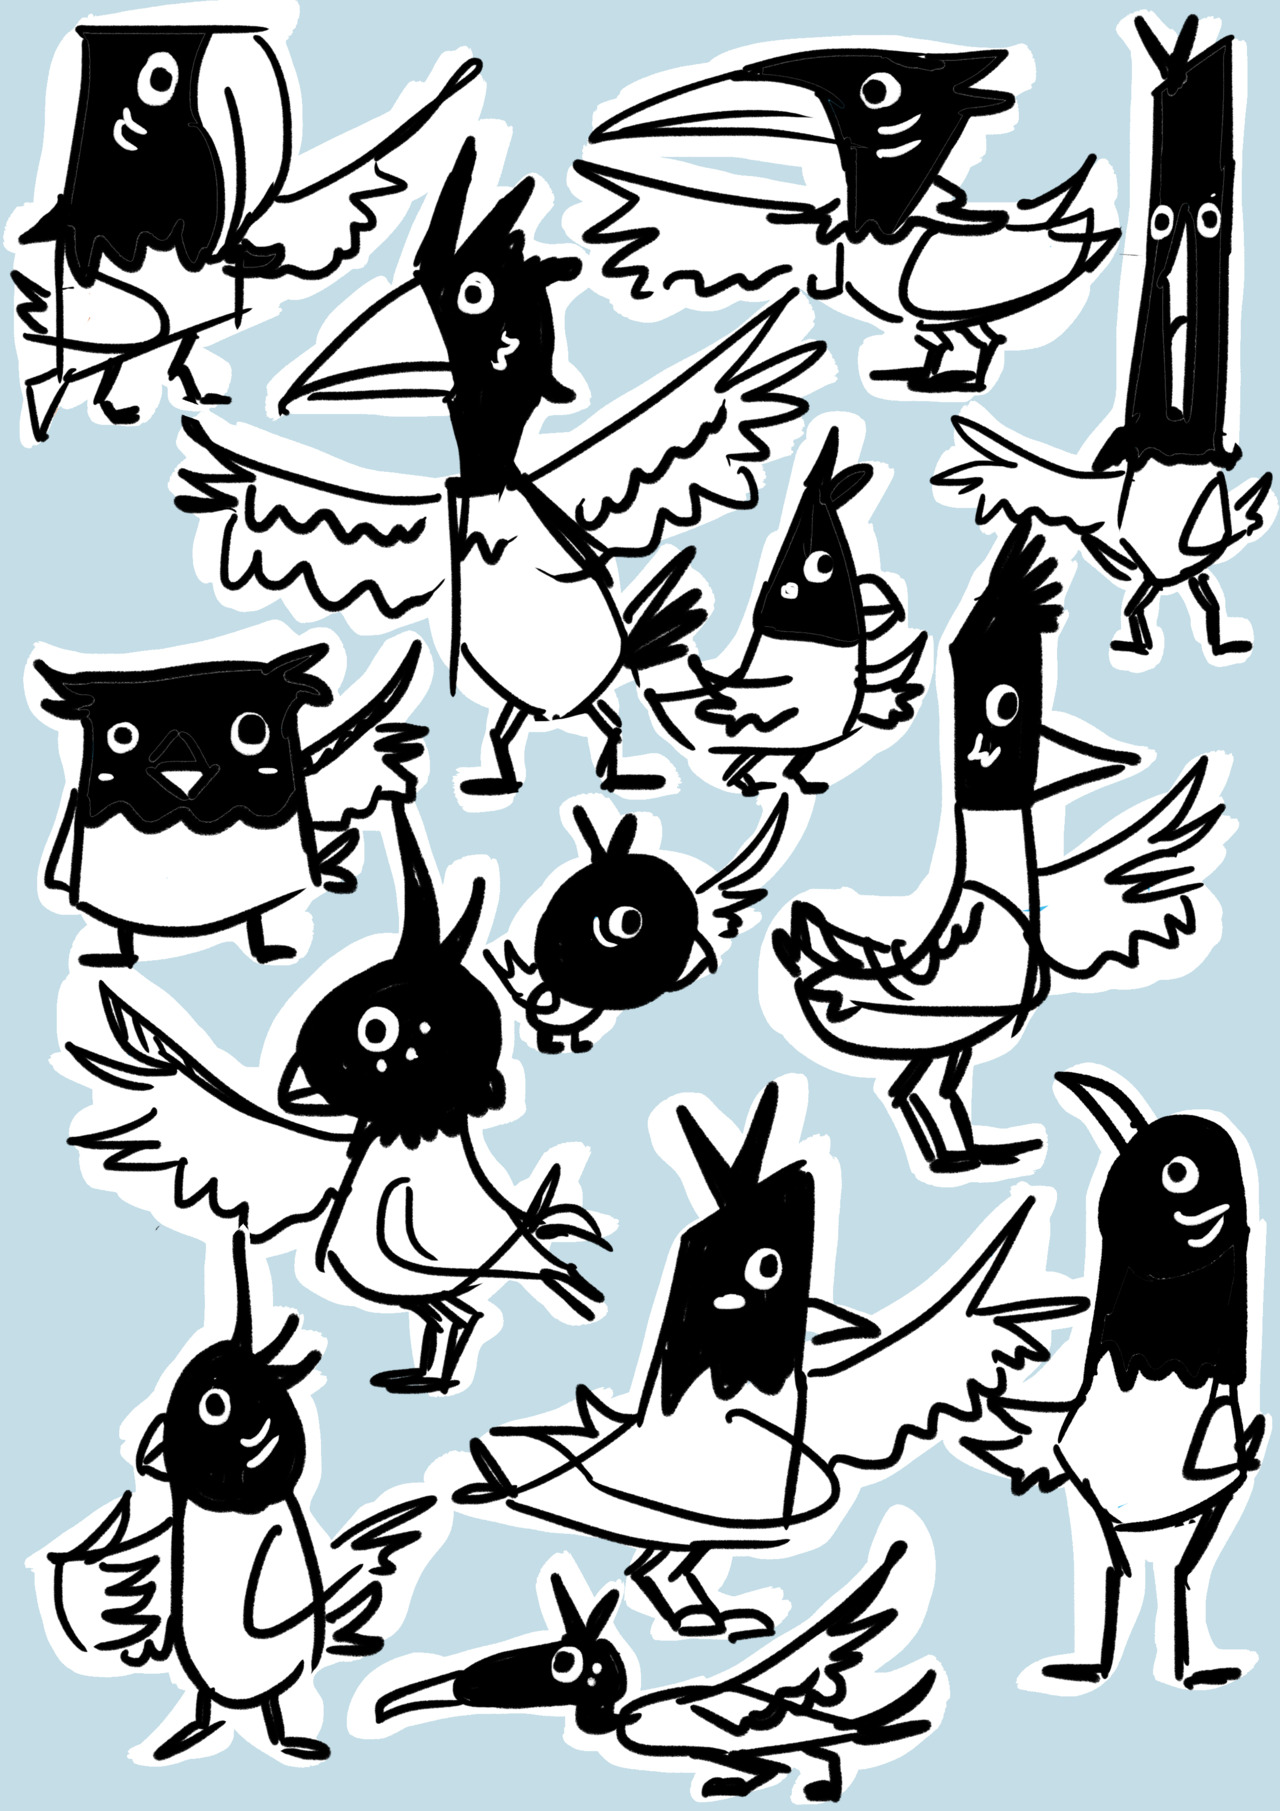 birds for my final year project